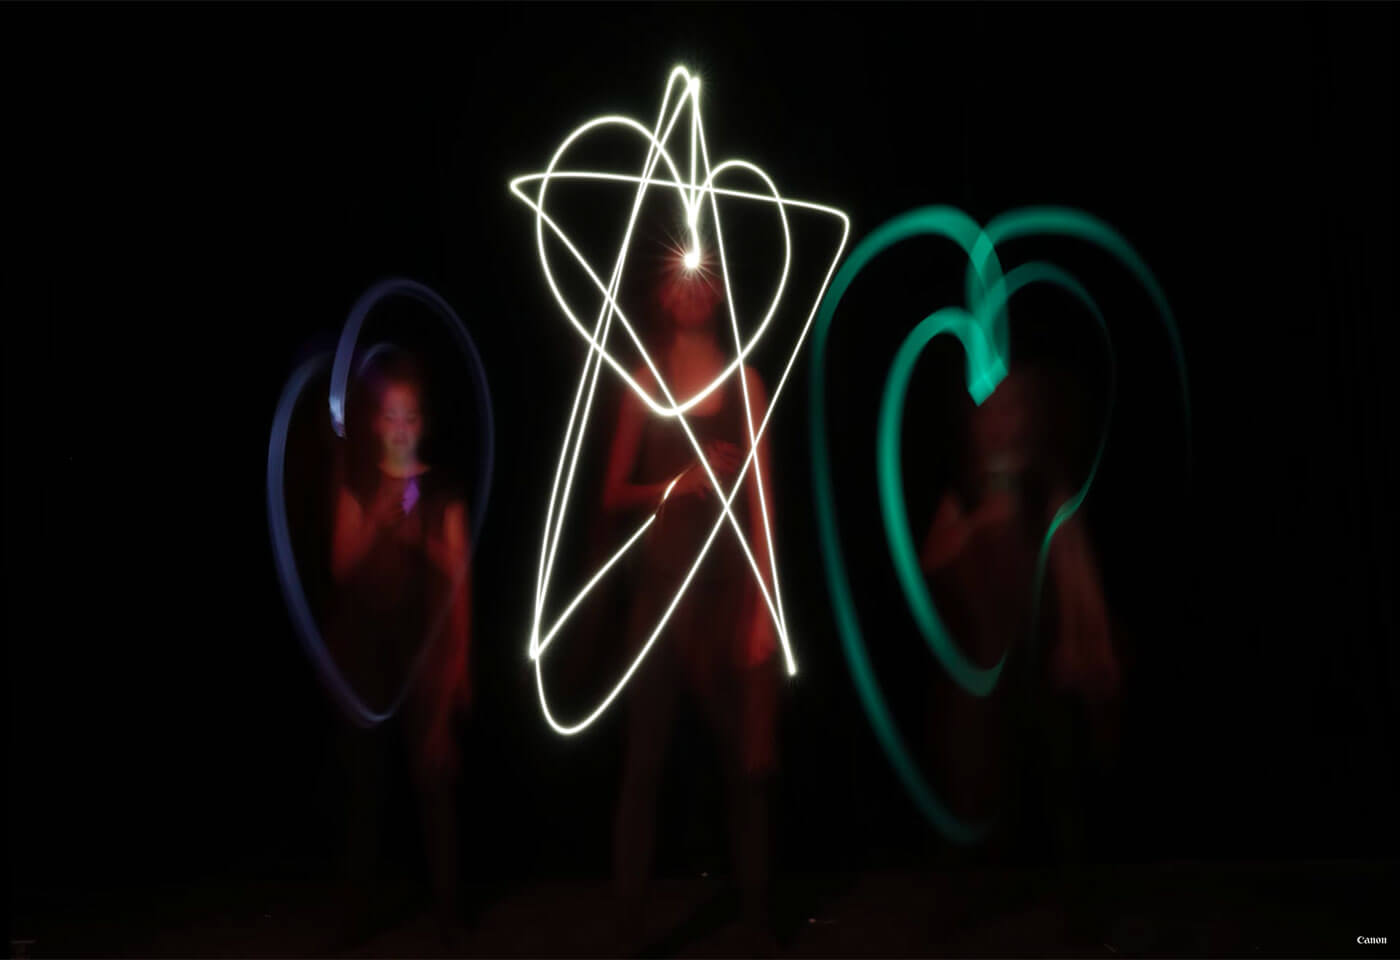 Light painting with a smartphone